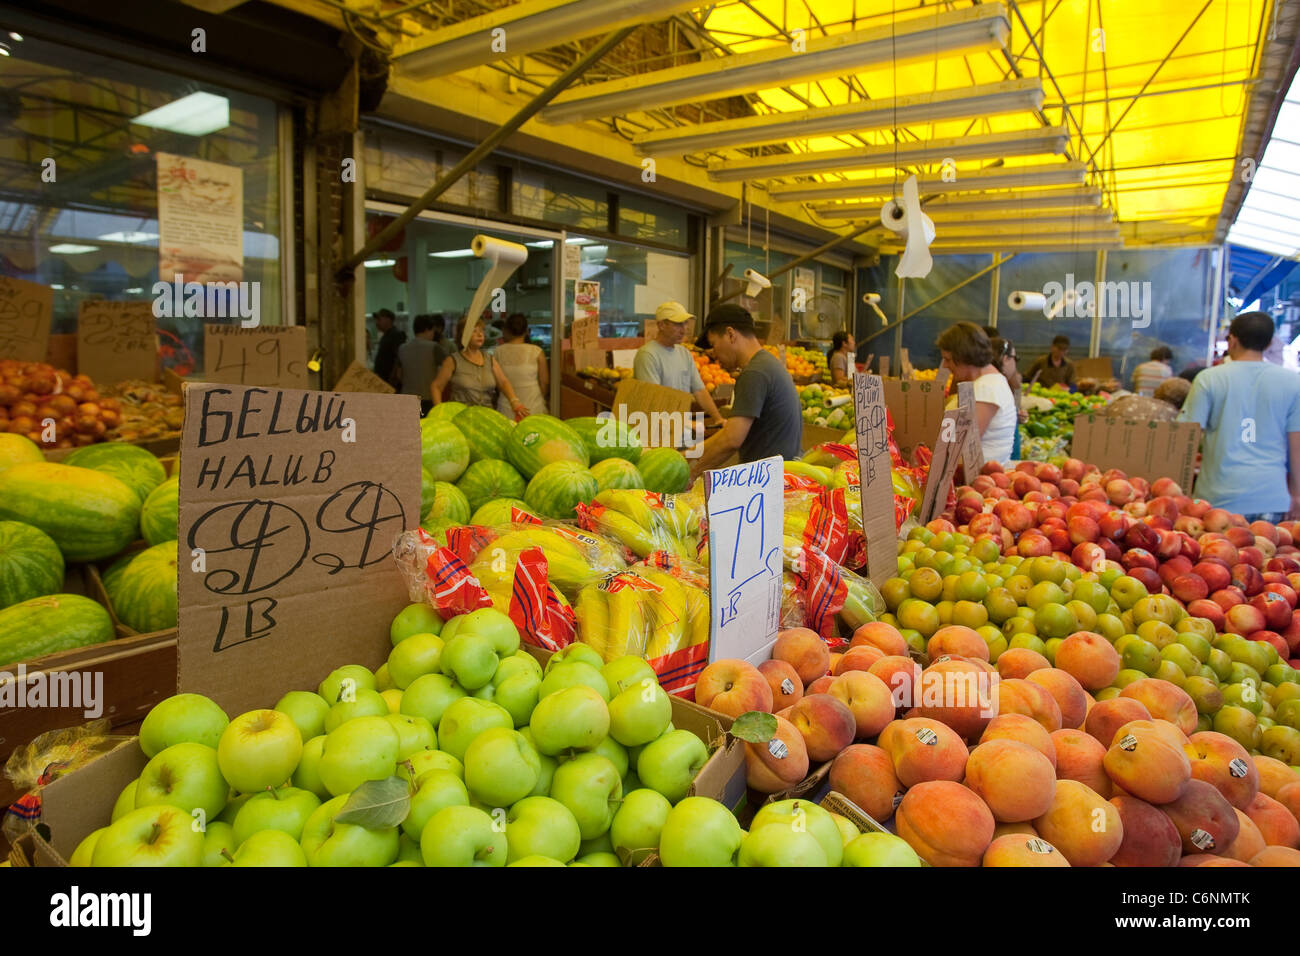 Clients peruse the stalls of a fruit and vegetables vendor on 86th Street in the New York City borough of Brooklyn - Stock Image